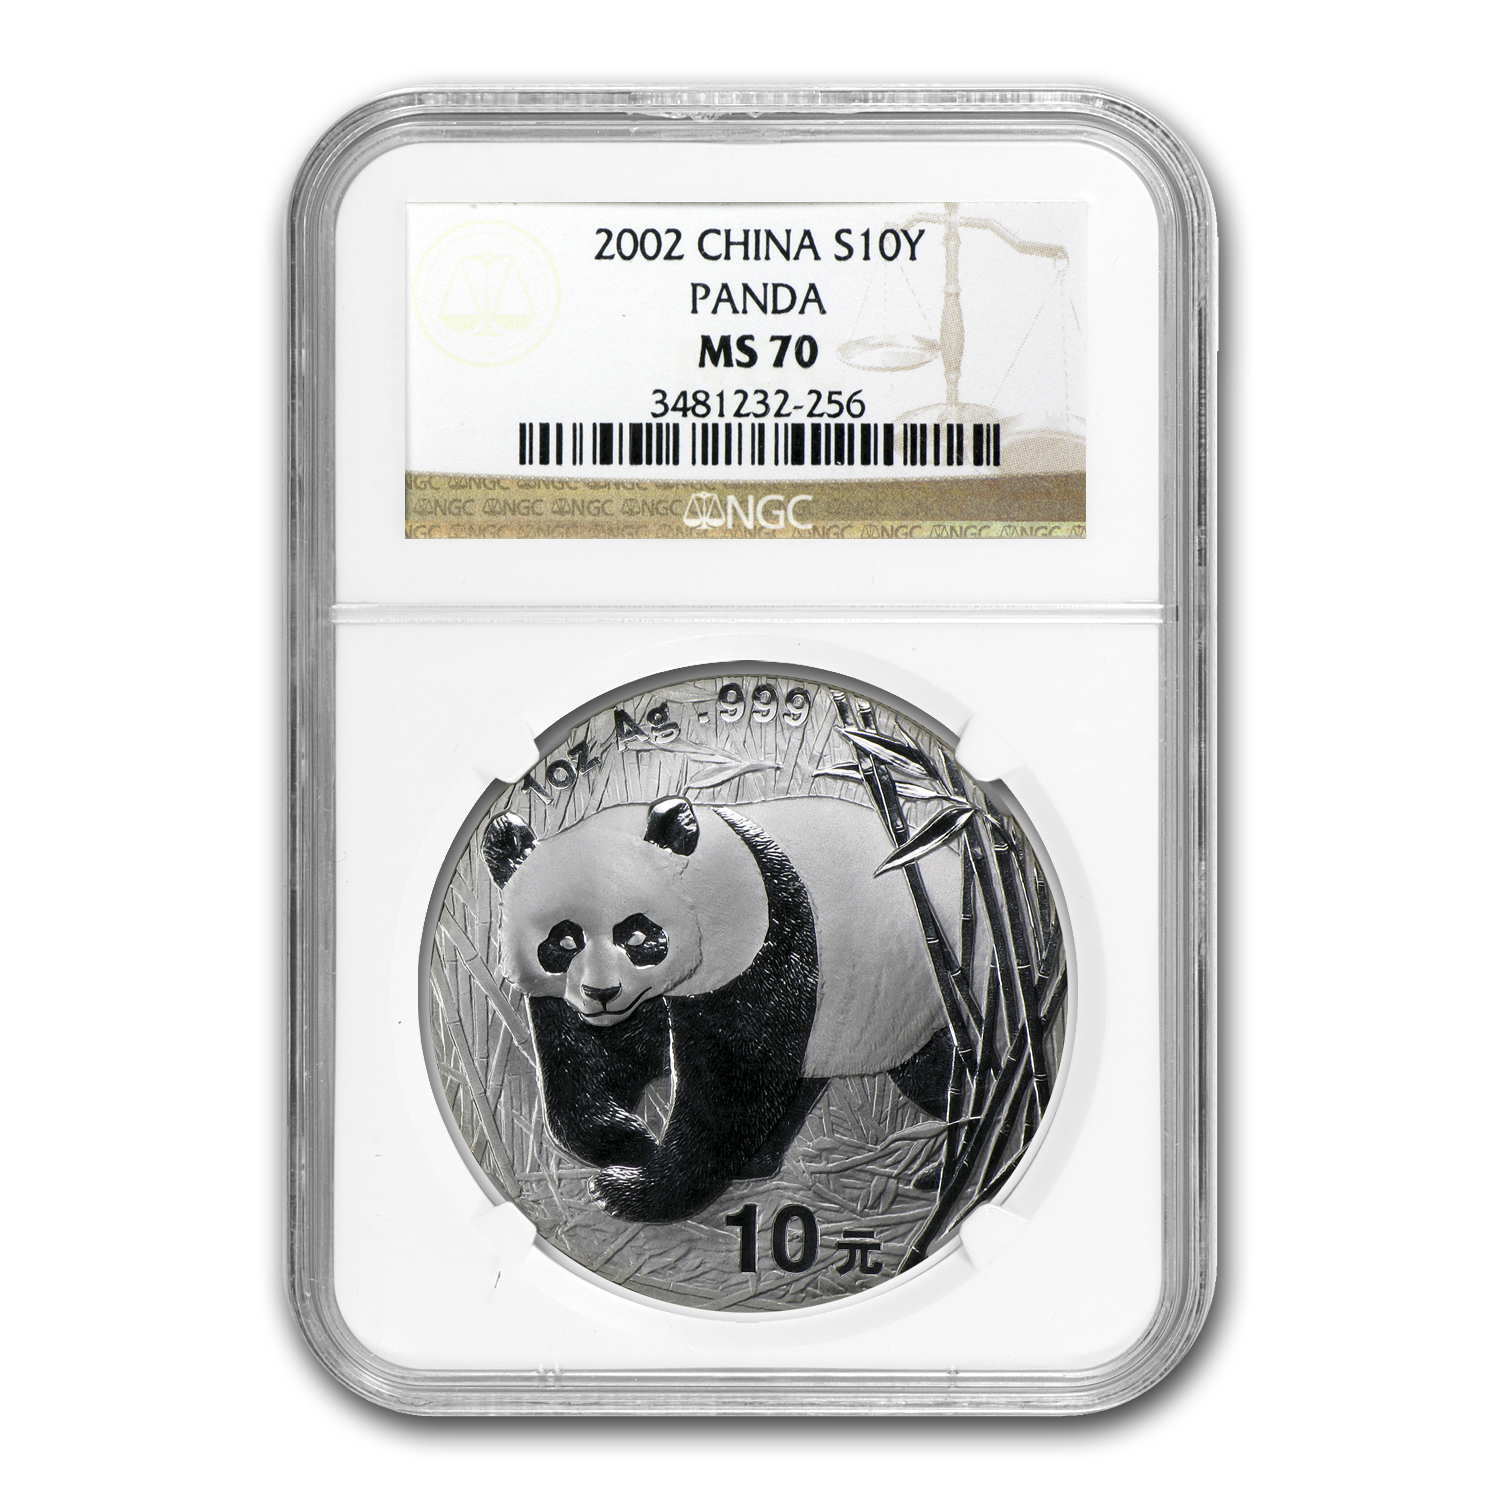 2002 China 1 oz Silver Panda MS-70 NGC